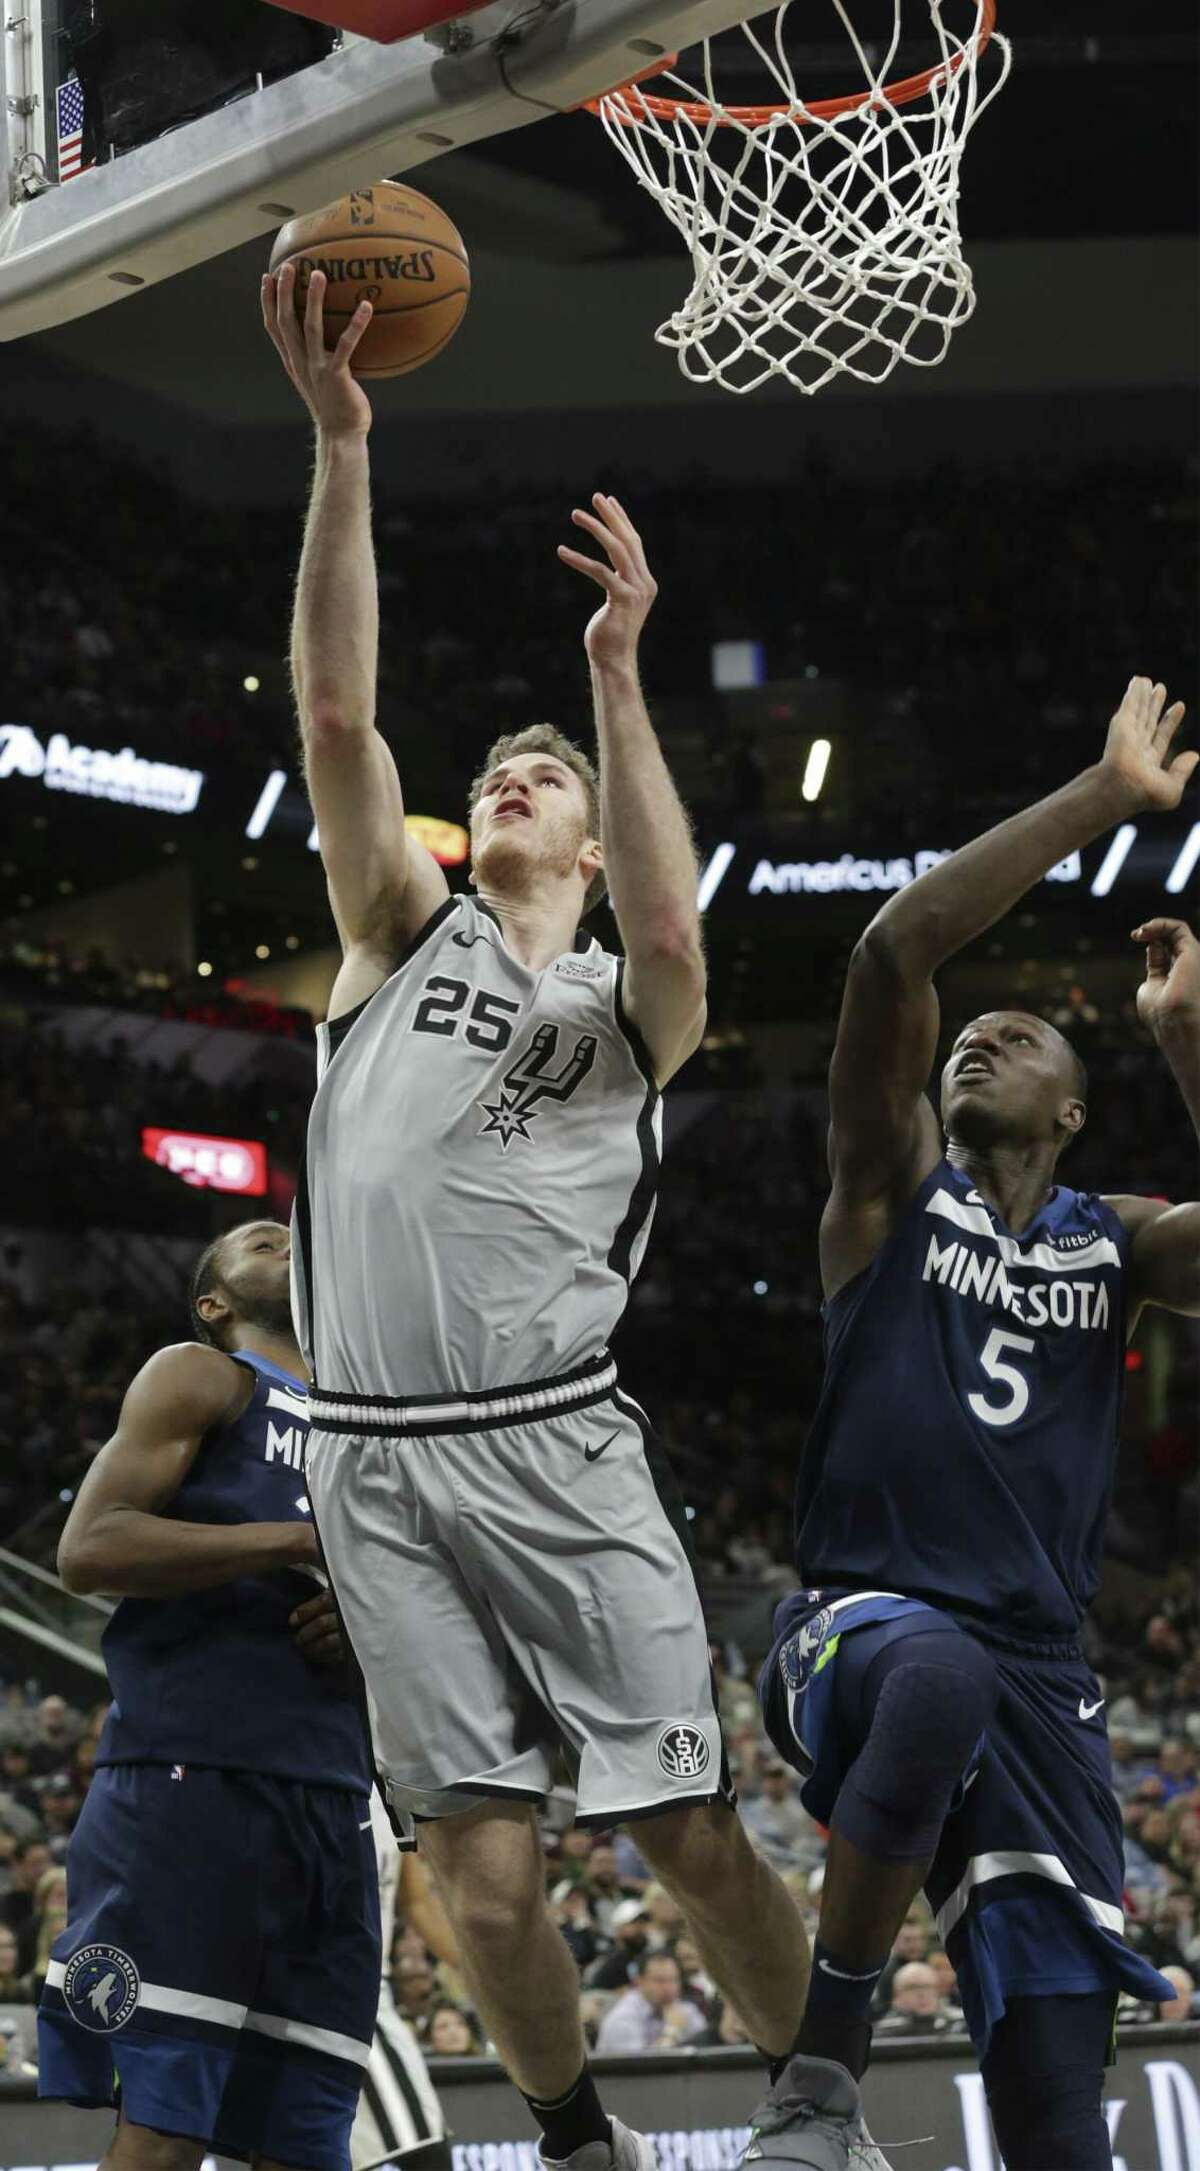 Jakob Poeltl gets a alyup around Gorgui Dieng as the Spurs host the Timberwolves at the AT&T Center on December 21, 2018.